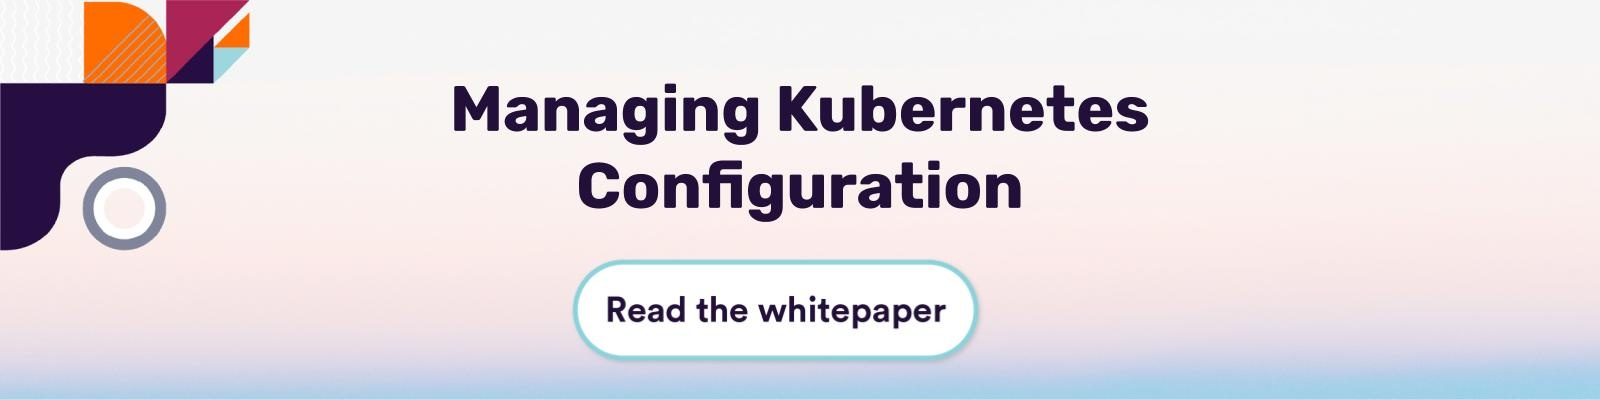 Managing Kubernetes Configuration Read the Whitepaper